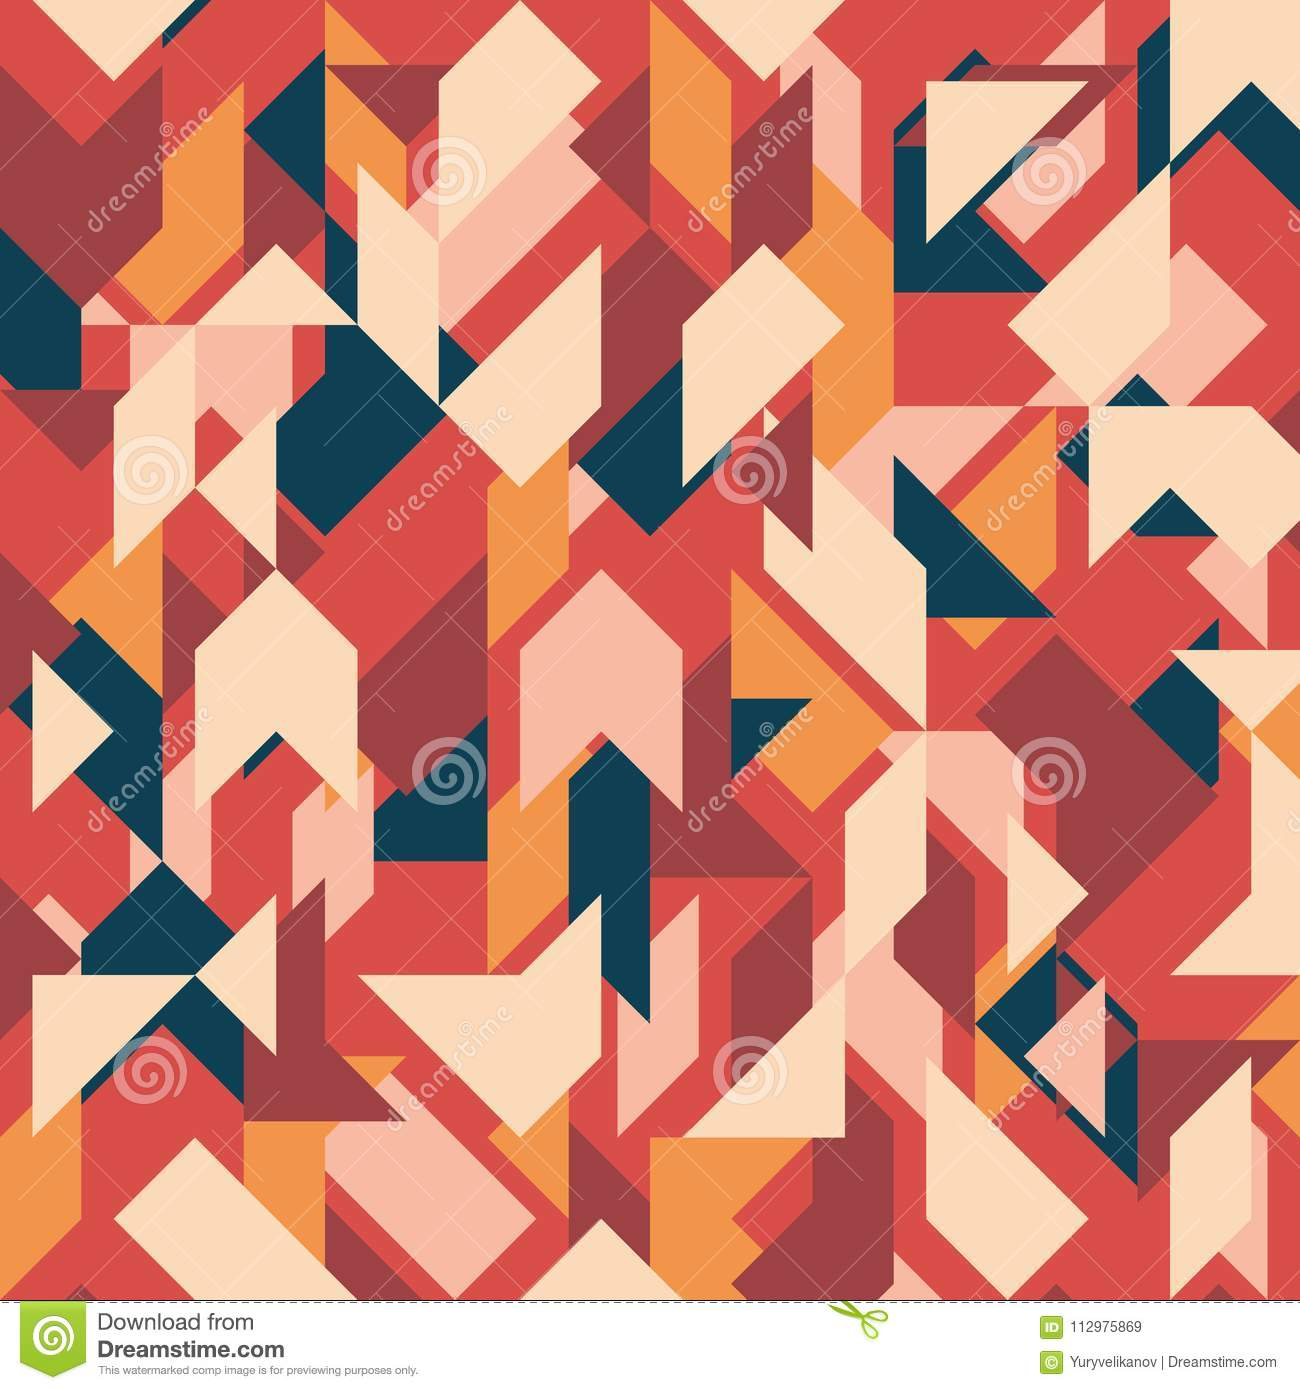 Abstract geometric background. Vintage overlapping rectangles and triangles.